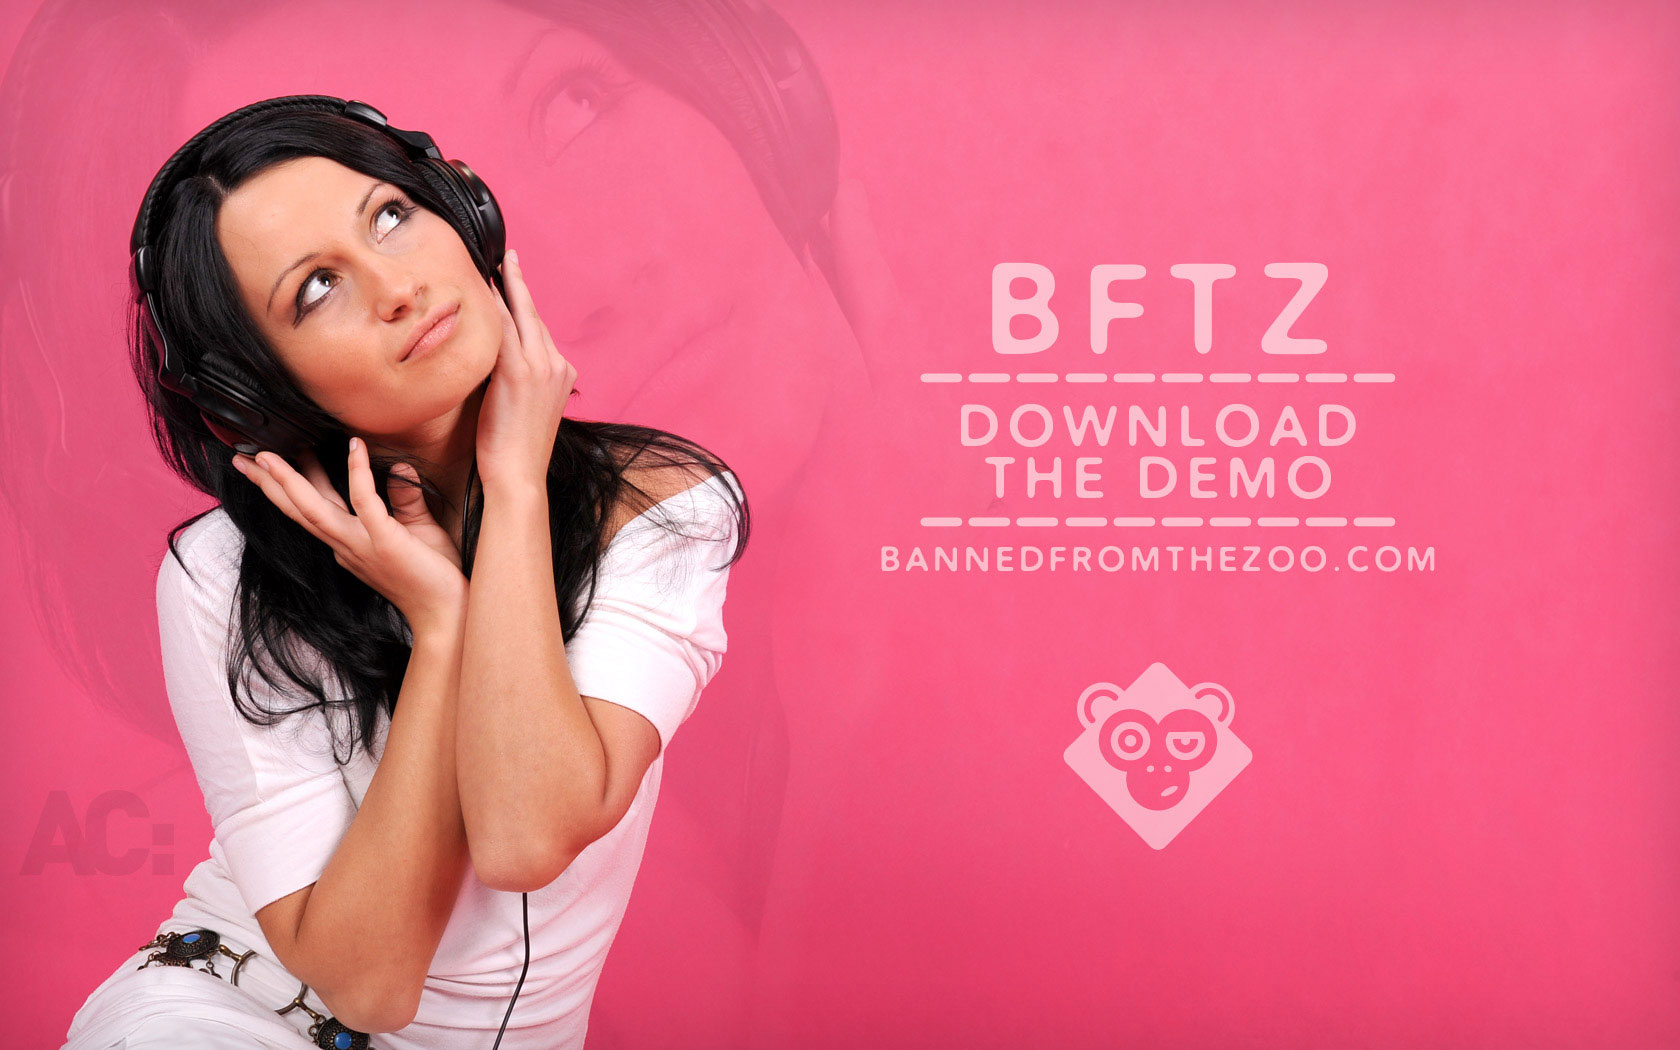 acarrozzo Wallpaper Design - BFTZ - Banned from the Zoo Demo Girl